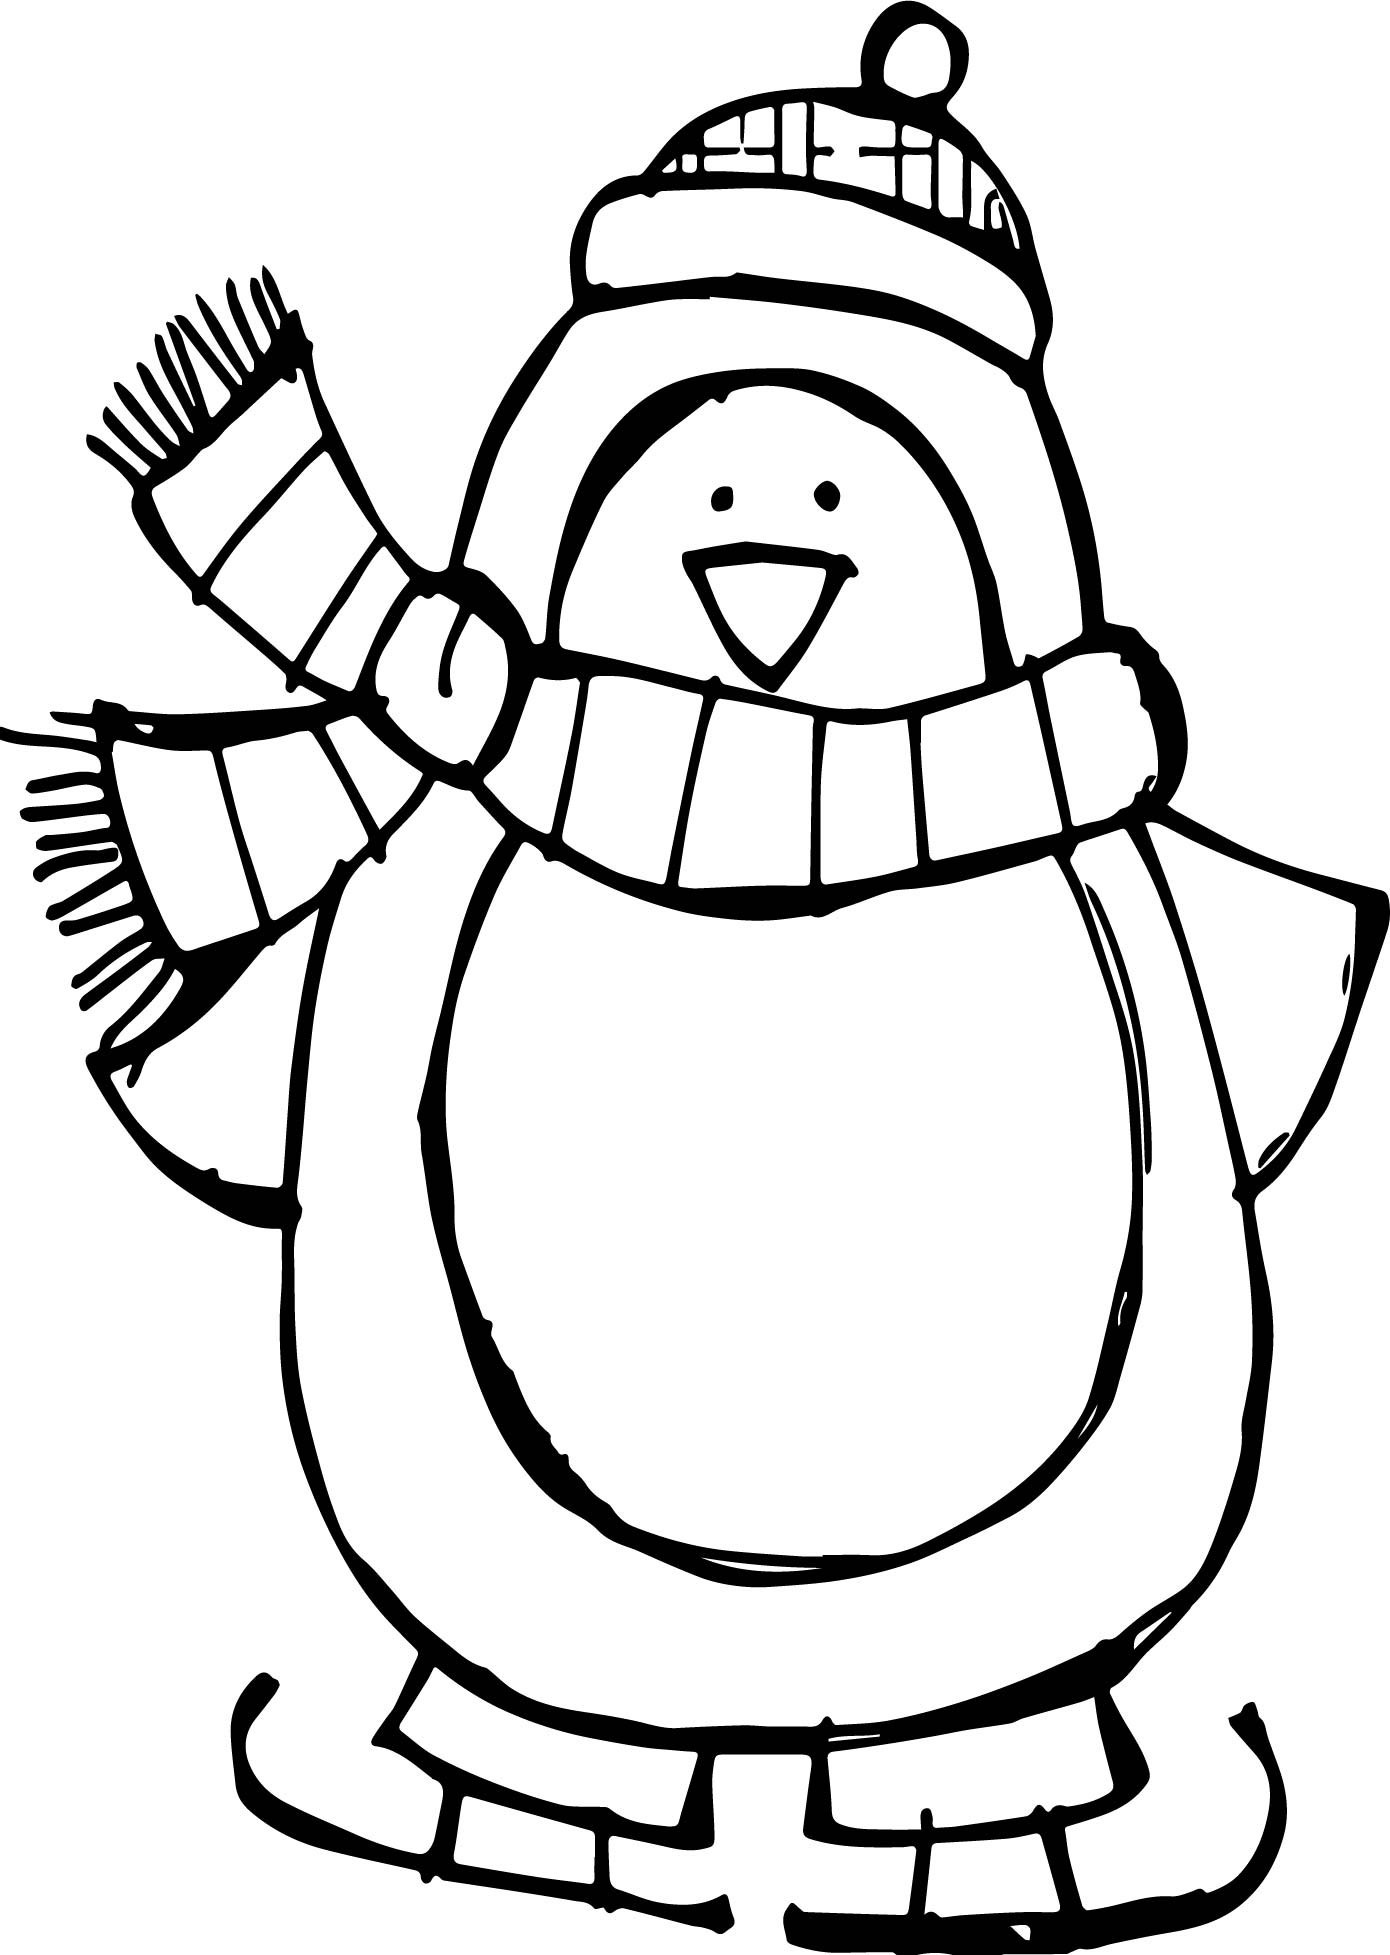 1390x1955 Penguin Coloring Page Cute Ba Pages Panda Ribsvigyapan Com Cool